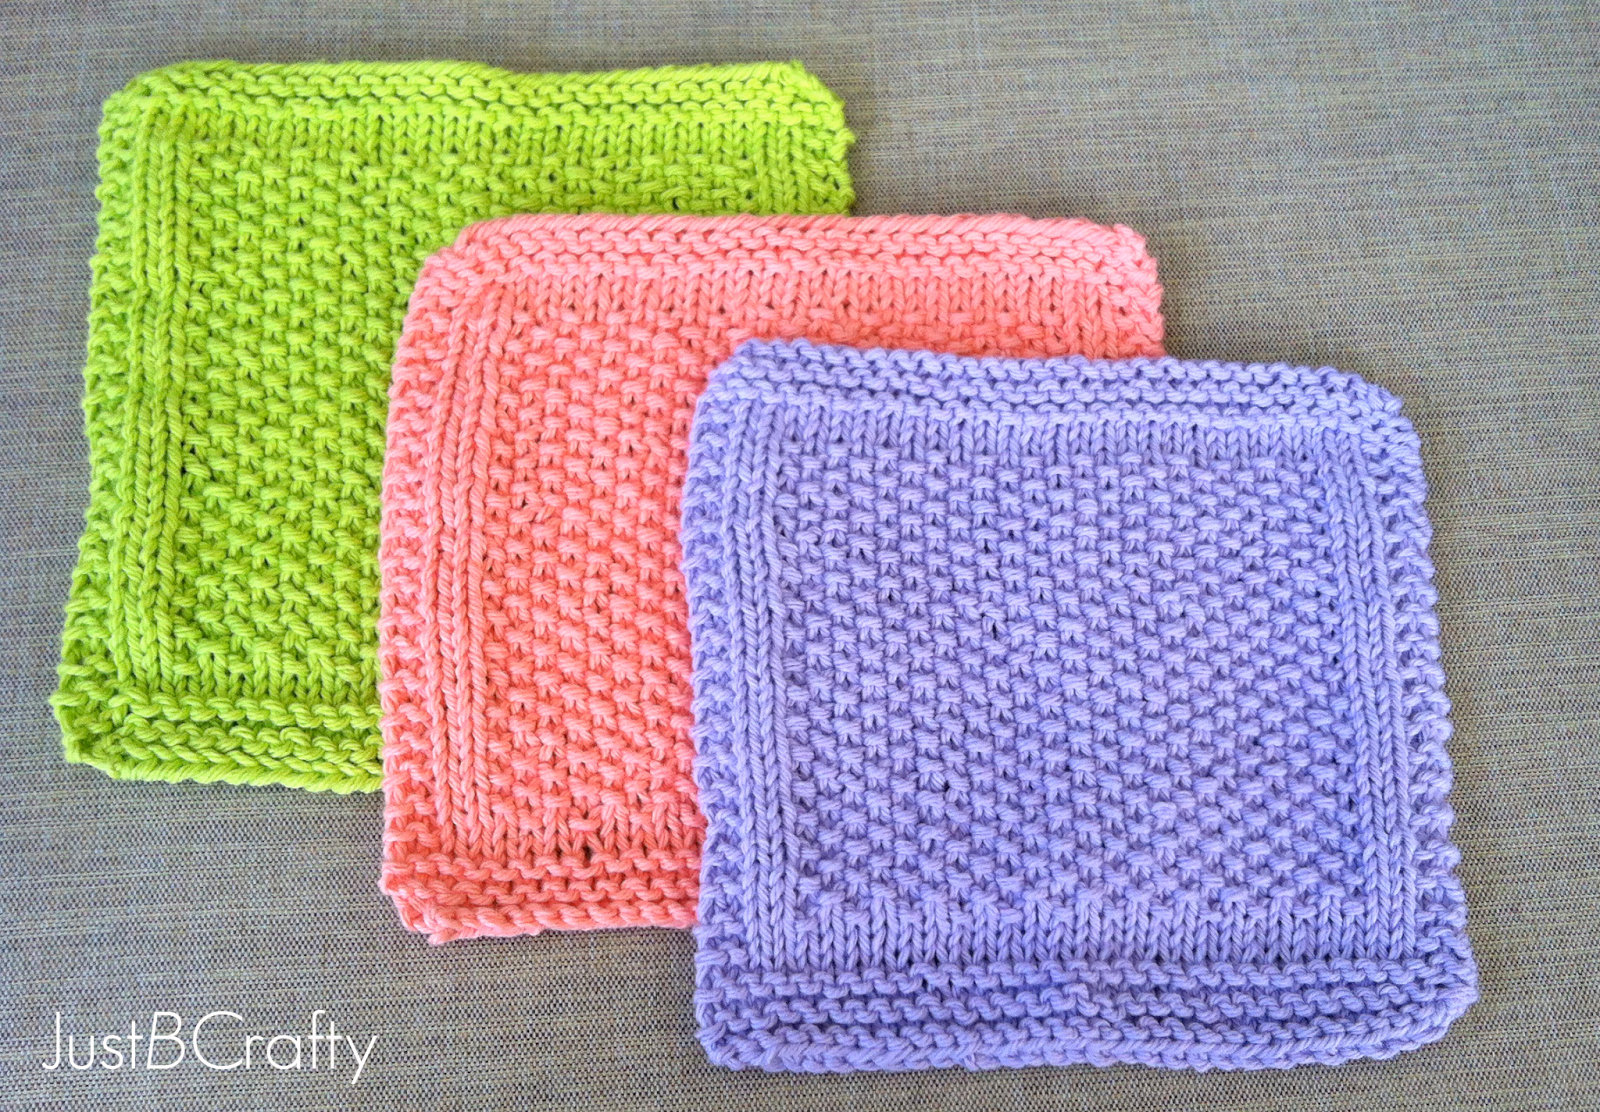 Crafty Knitting Patterns : Seed Stitch Dishcloths - Just Be Crafty